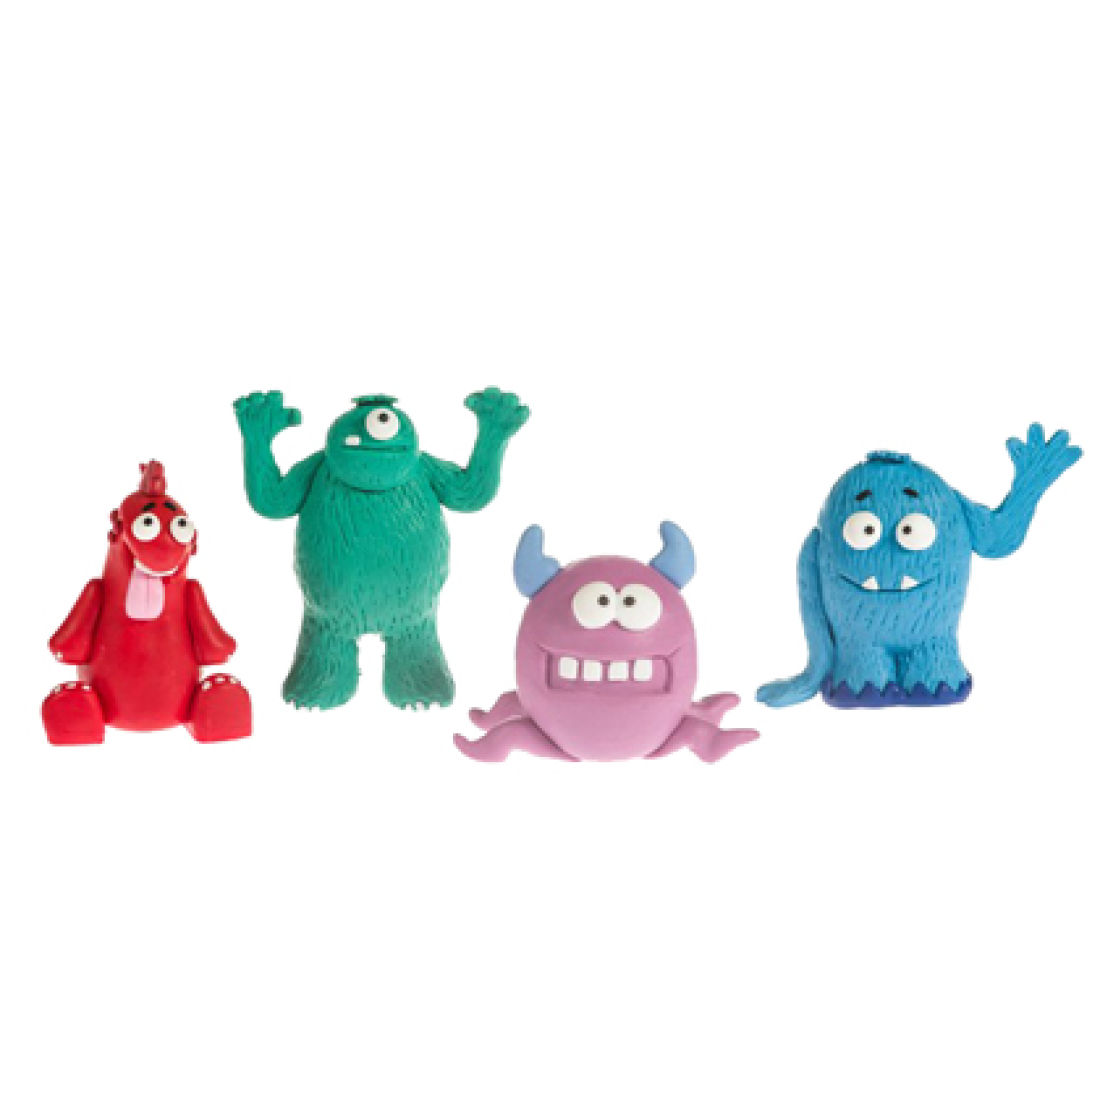 Claydough Monster Cake Toppers Set of 4 | Squires Kitchen Shop